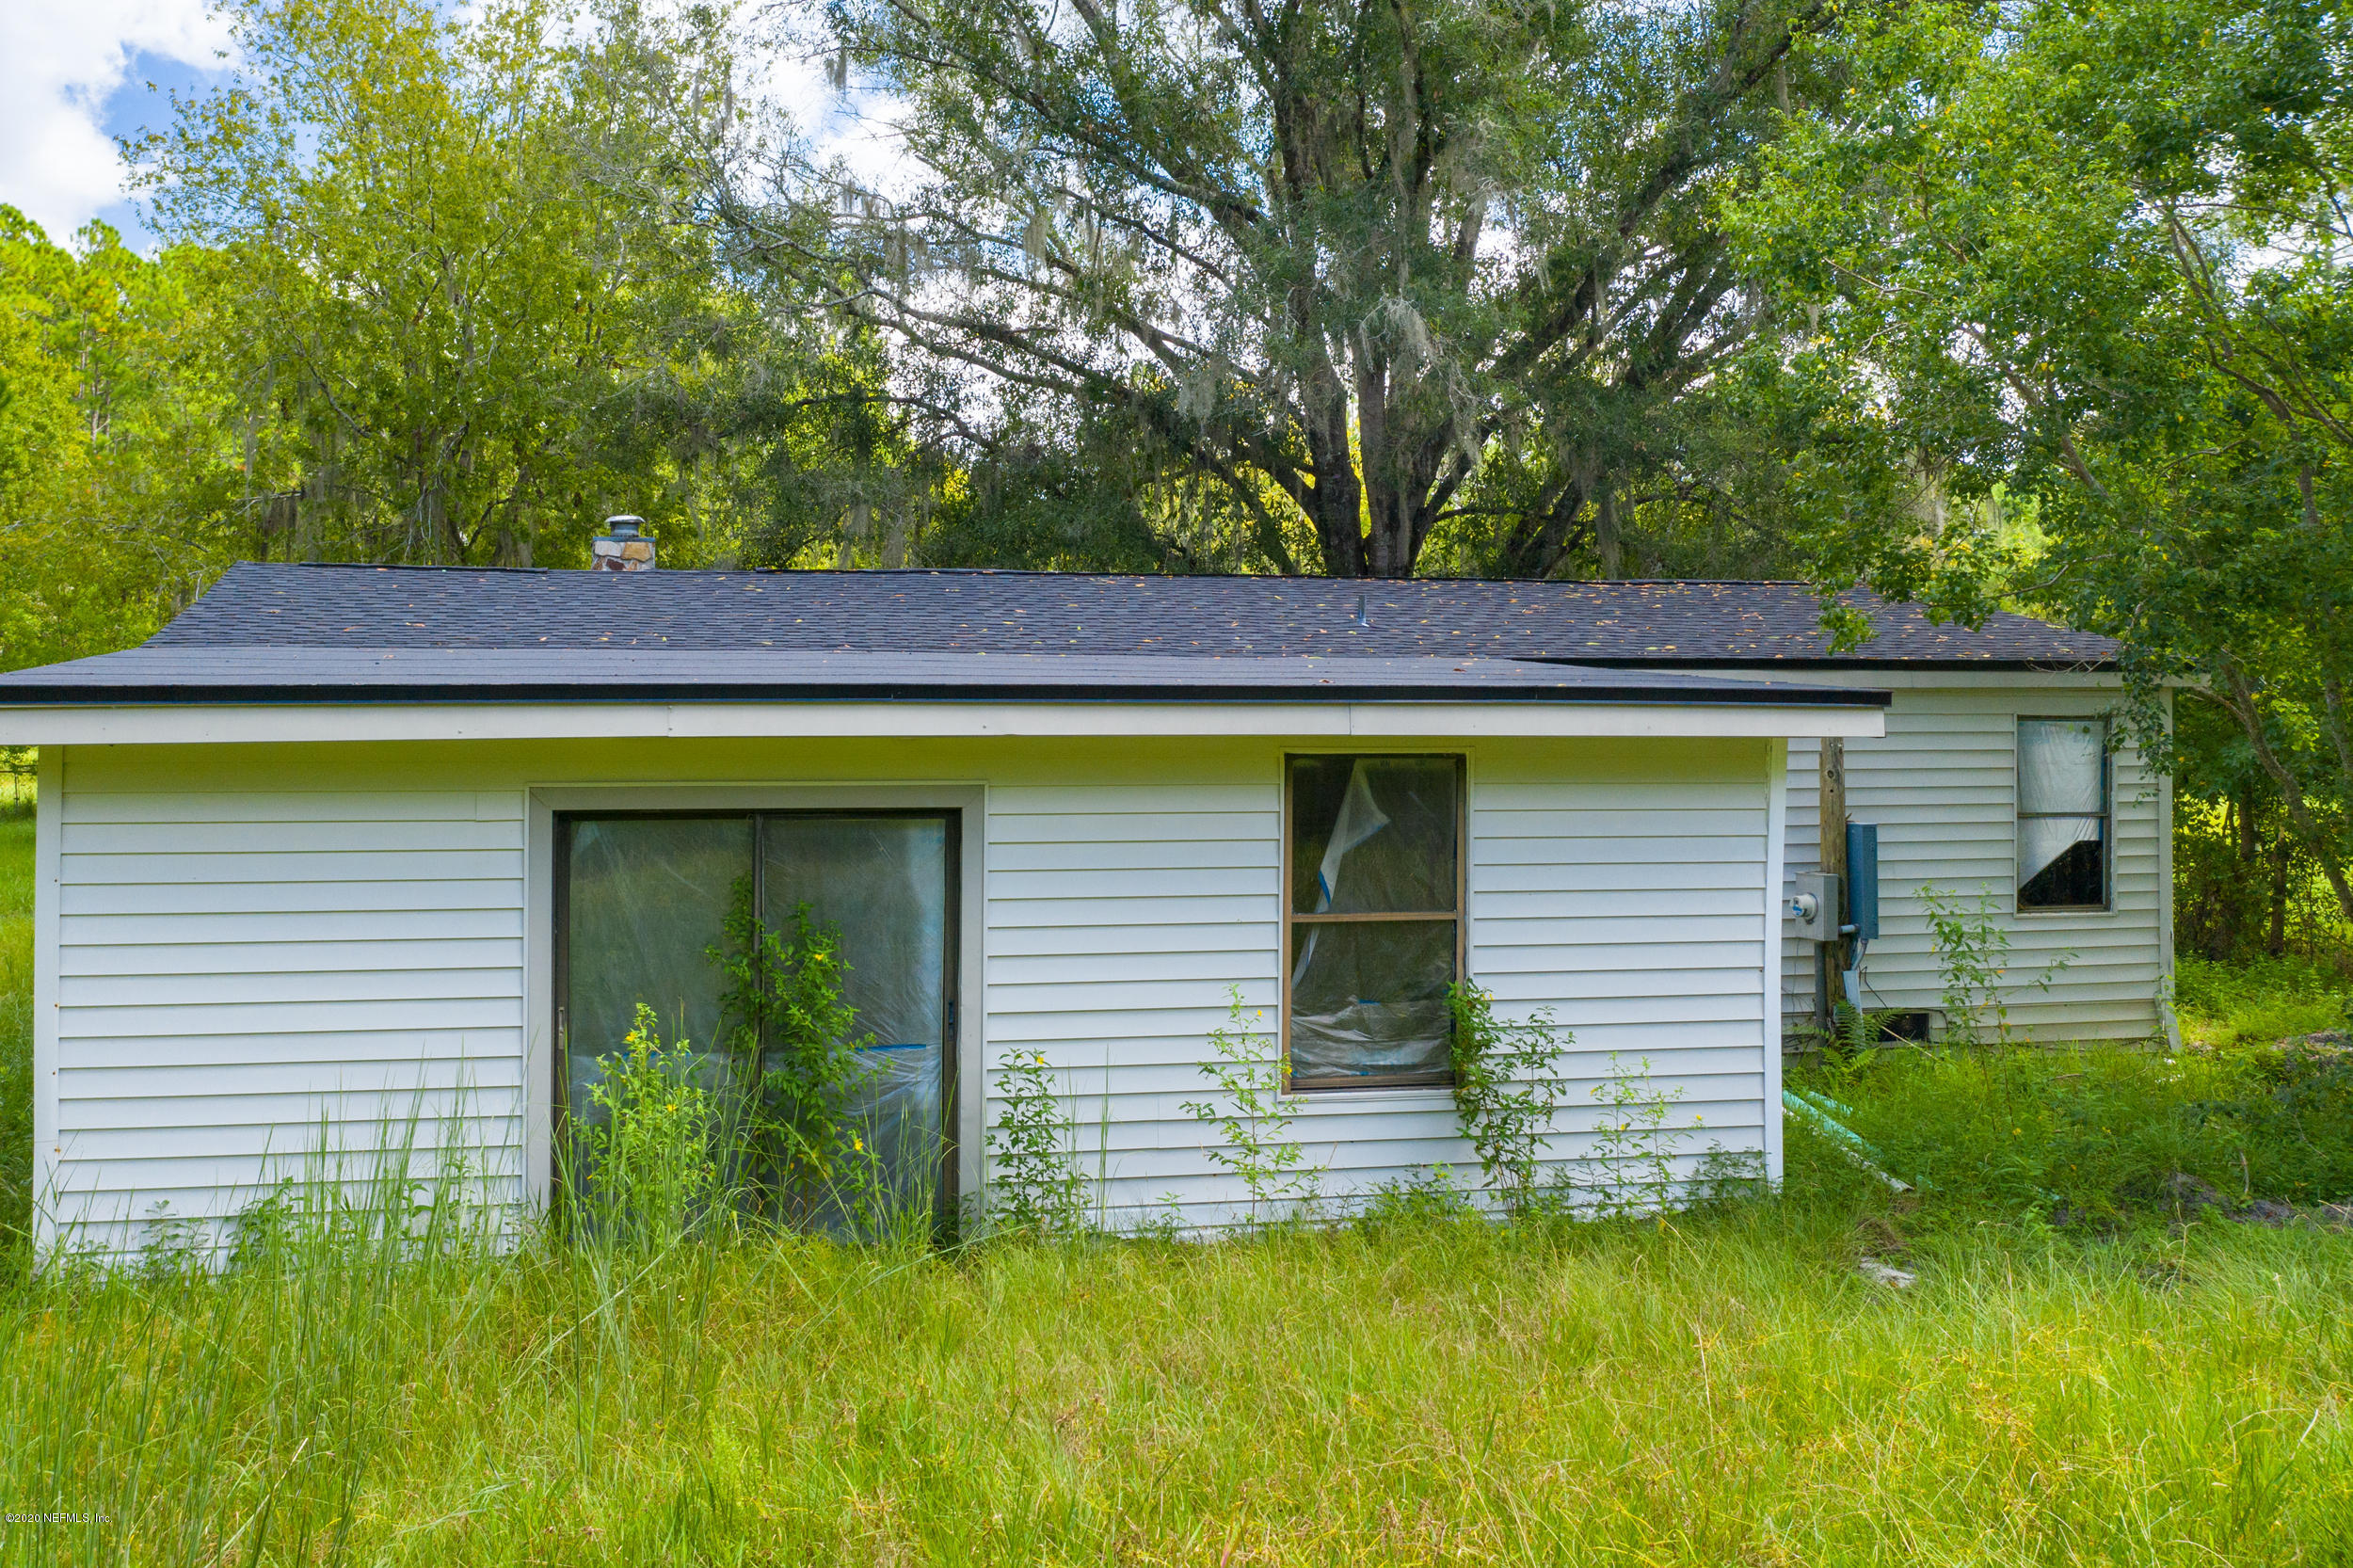 2631 C H ARNOLD, ST AUGUSTINE, FLORIDA 32092, 3 Bedrooms Bedrooms, ,2 BathroomsBathrooms,Residential,For sale,C H ARNOLD,1049620